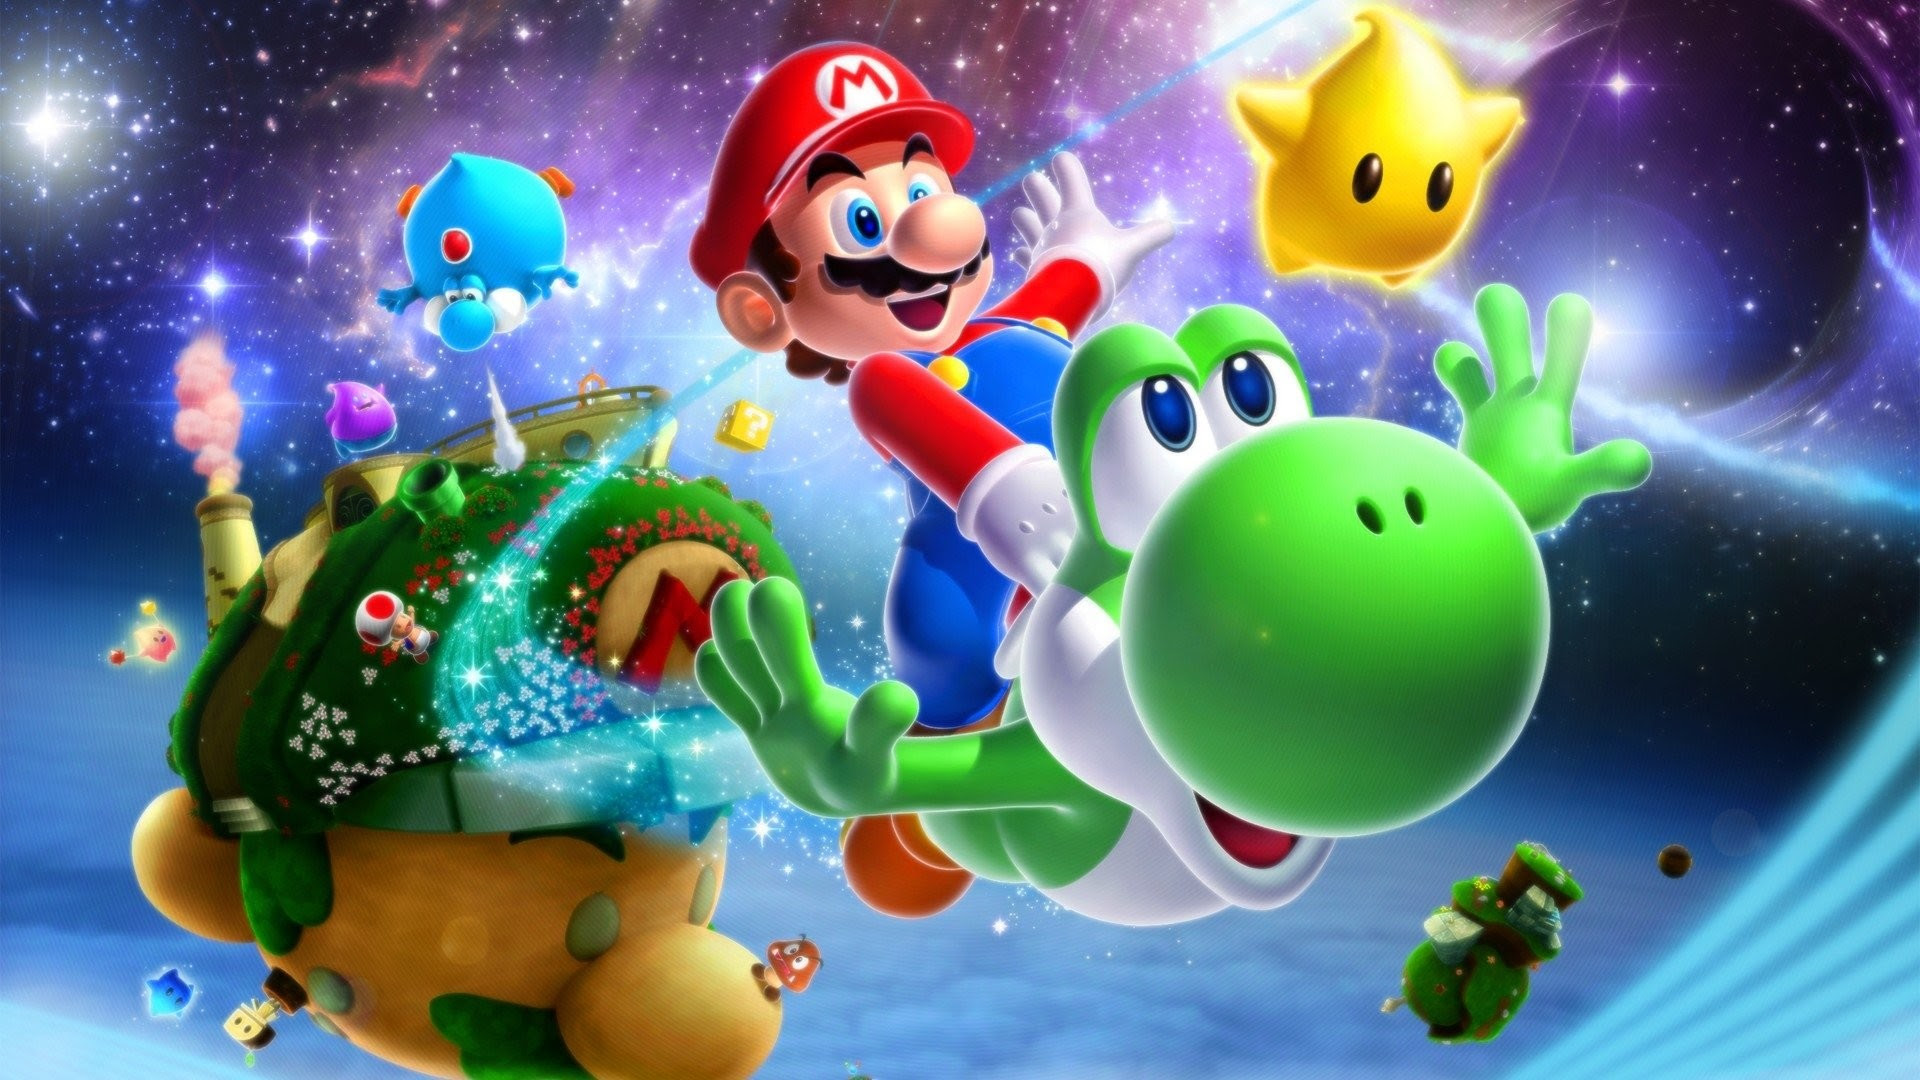 Super Mario Galaxy 2 Wallpaper Hd 77 Images